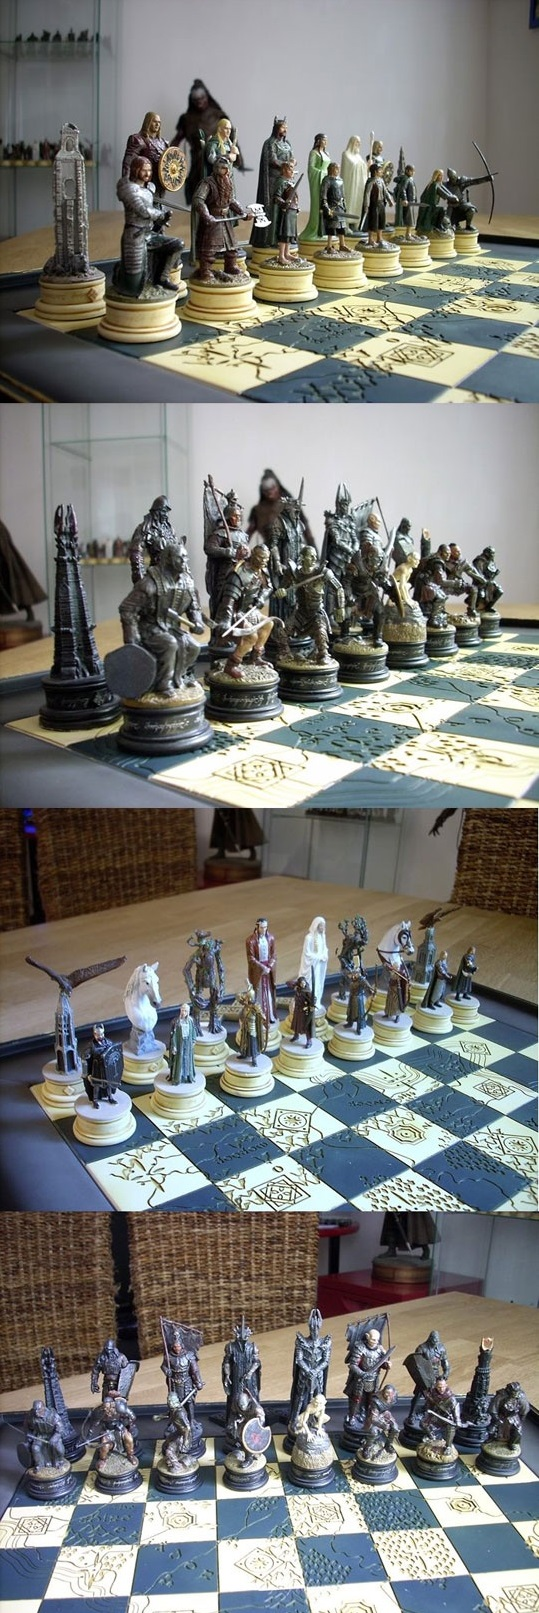 The Lord Of The Rings Chess Set Chess Sets Chess And Lord